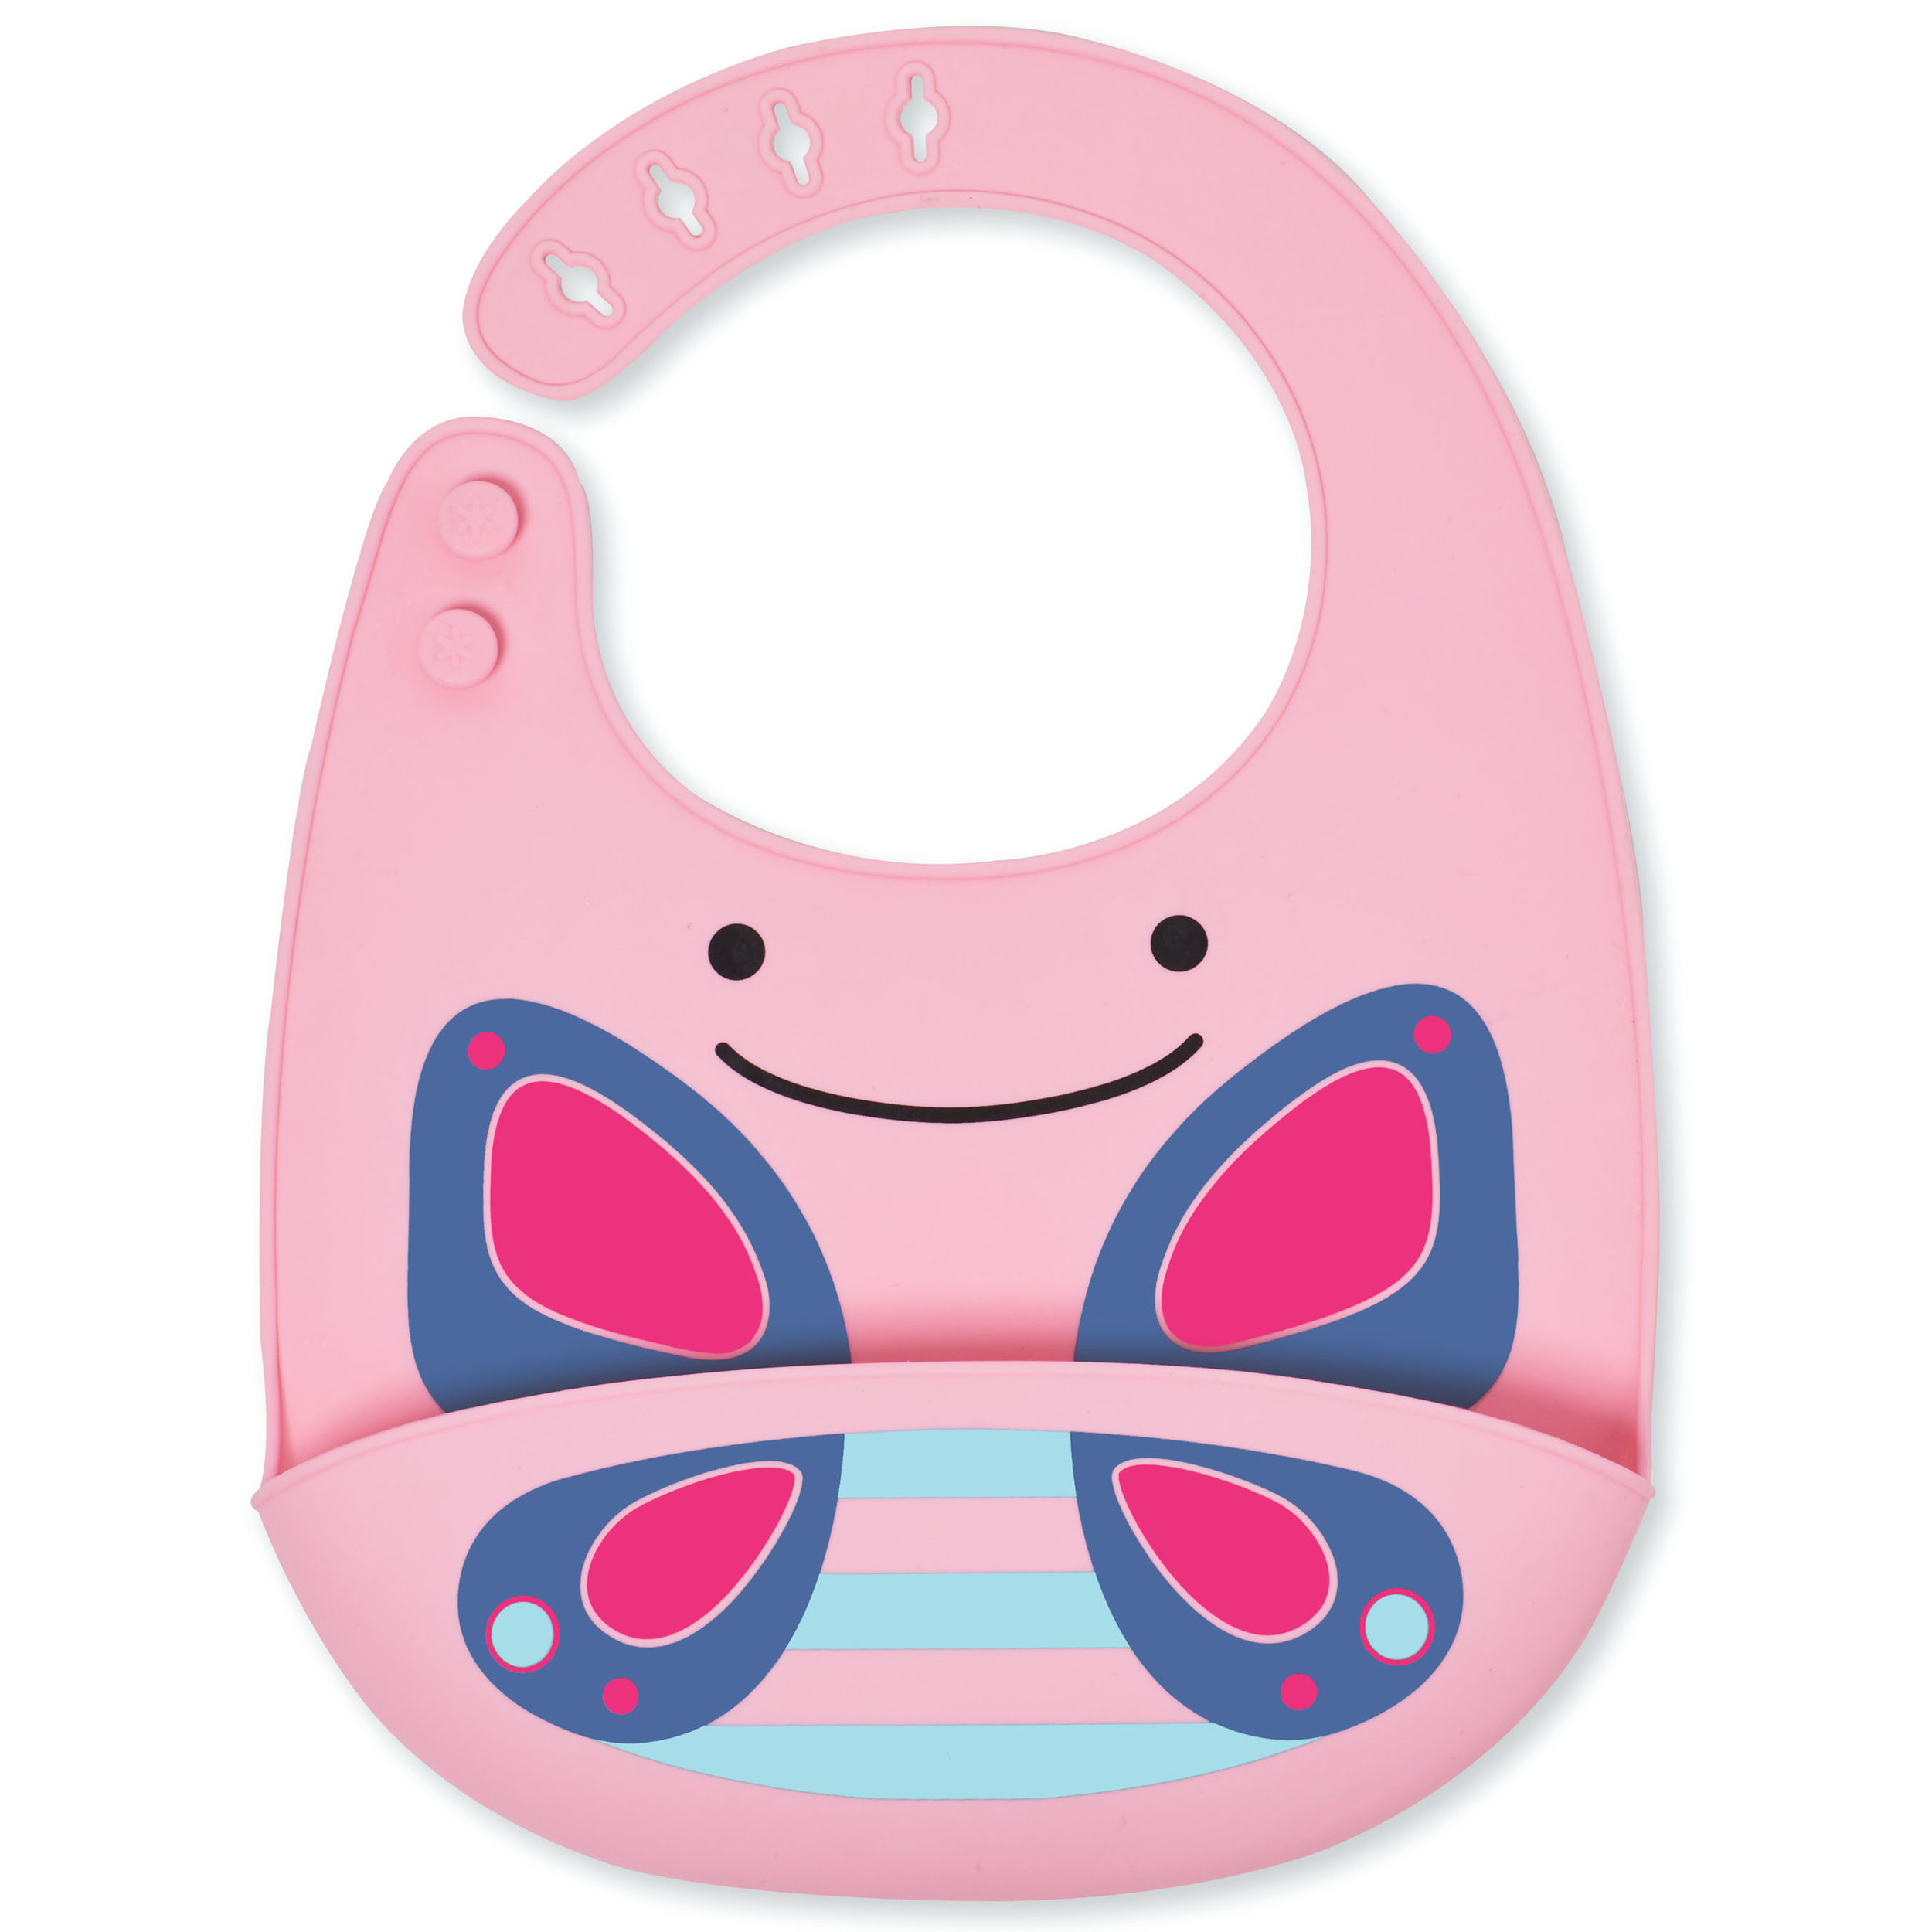 01_Zoo_SiliconeBib_Butterfly_S(2700).jpg